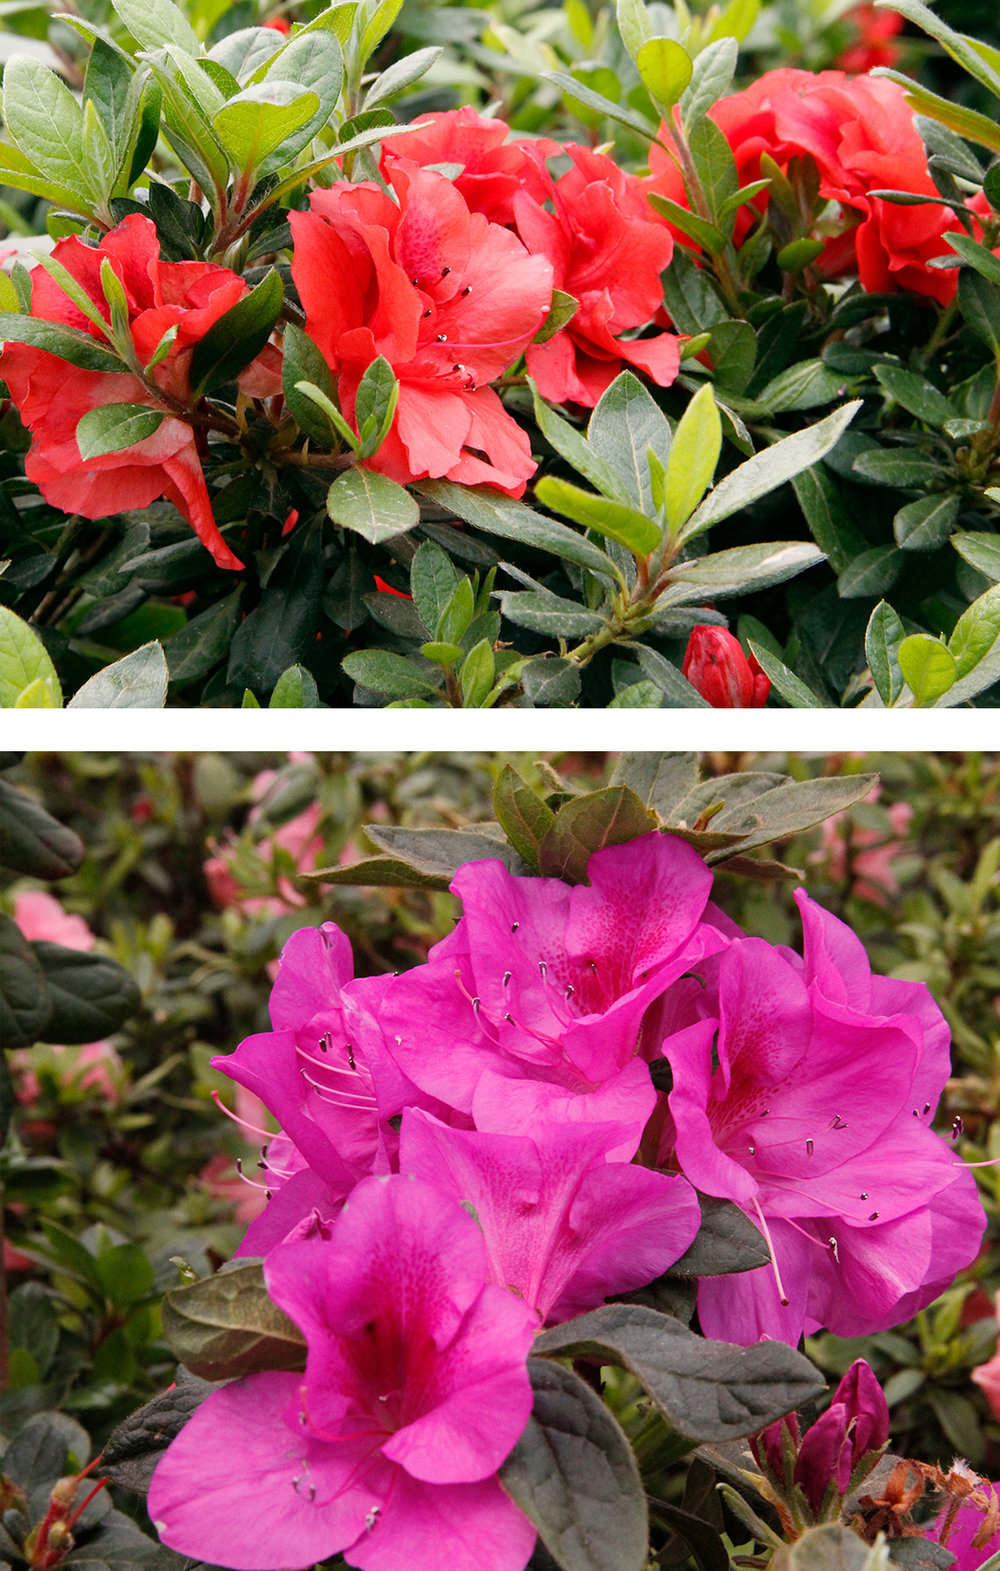 Azaleas: Though the knockout roses have displaced the popularity of the azalea, there's nothing more southern than a fiery hedge of azaleas in full bloom.Try a native variety such as Flame, Pinxter, Smoothleaf, and the rare Plumleaf, which blooms long after other varieties have faded. Carolina Heritage Nursery has several types and is often at the Matthews Community Farmers Market. -